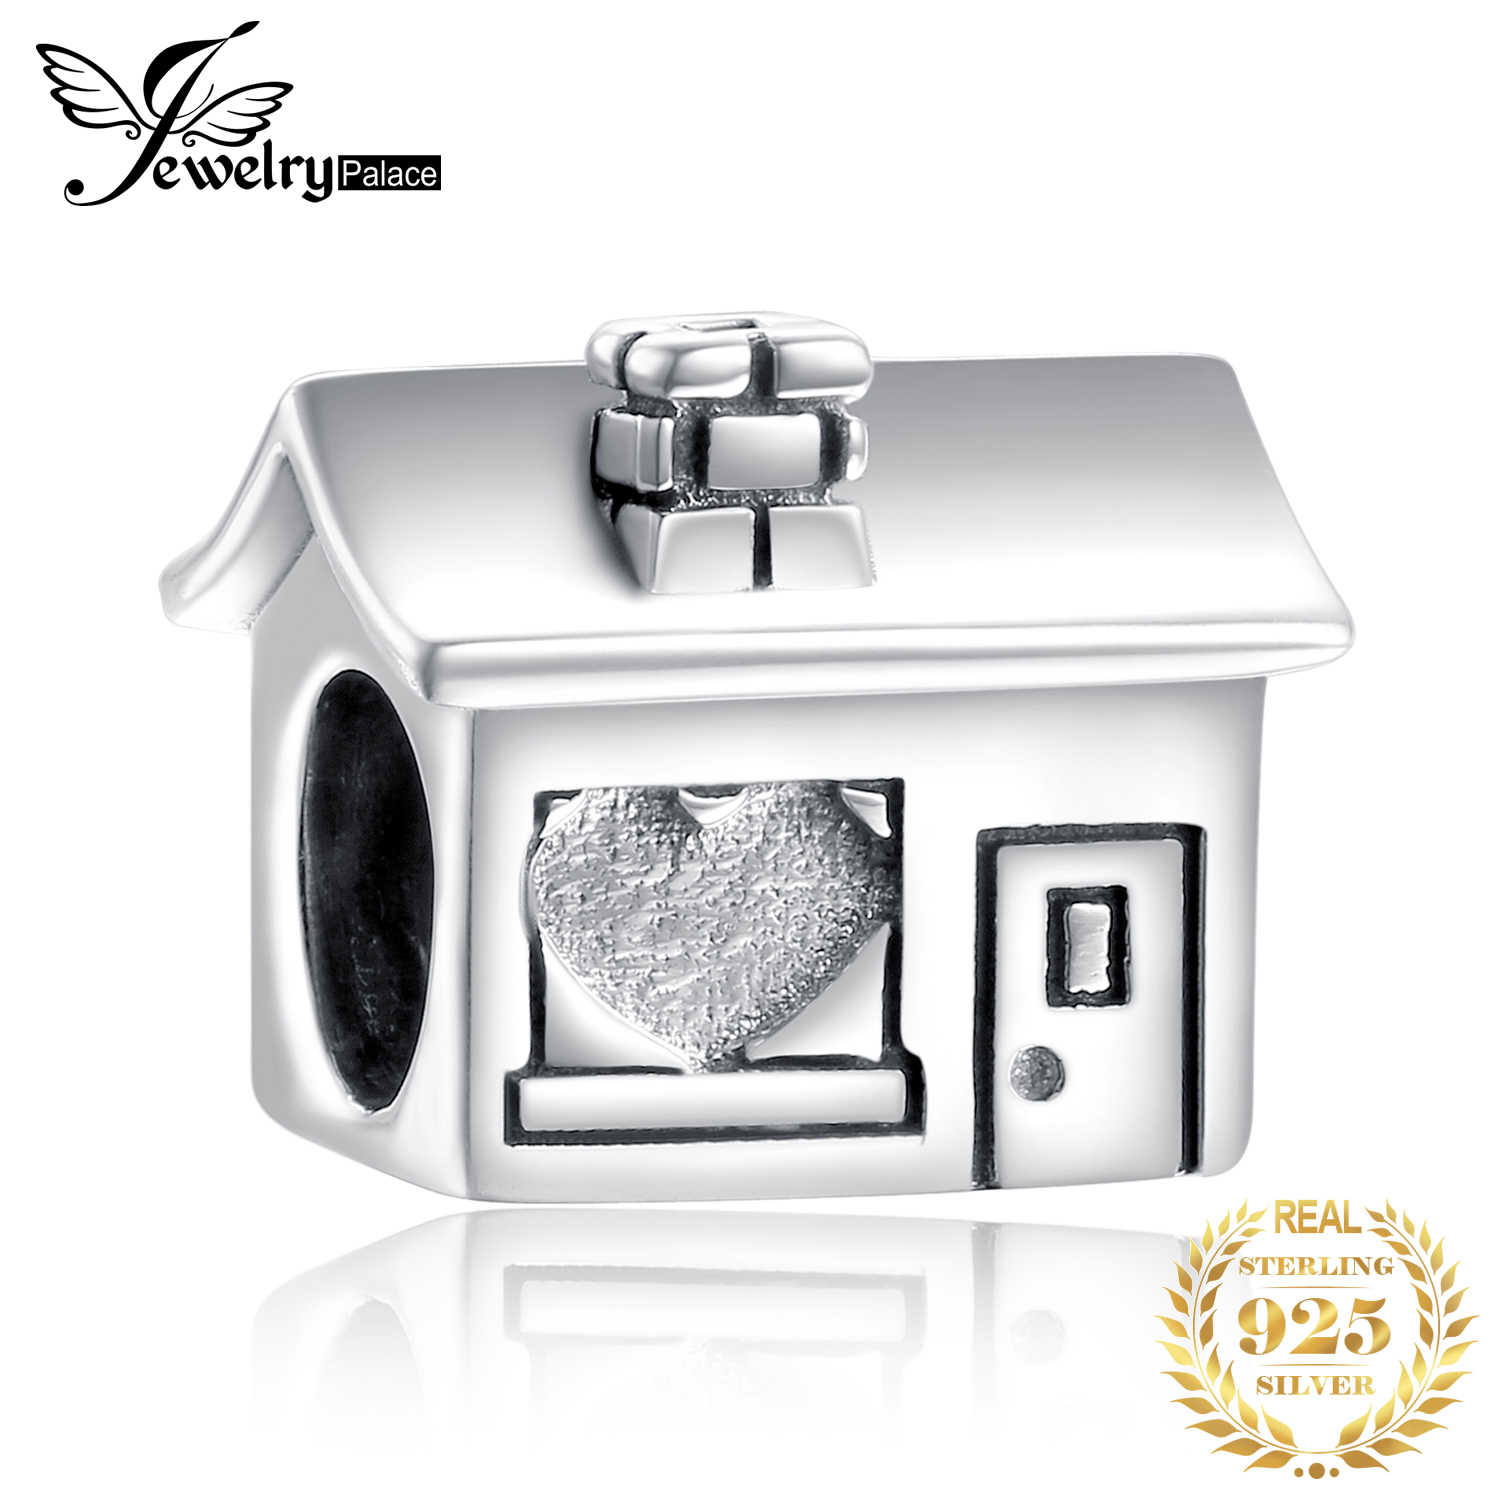 JewelryPalace Family House 925 Sterling Silver Beads Charms Silver 925 Original For Bracelet Silver 925 original Jewelry Making